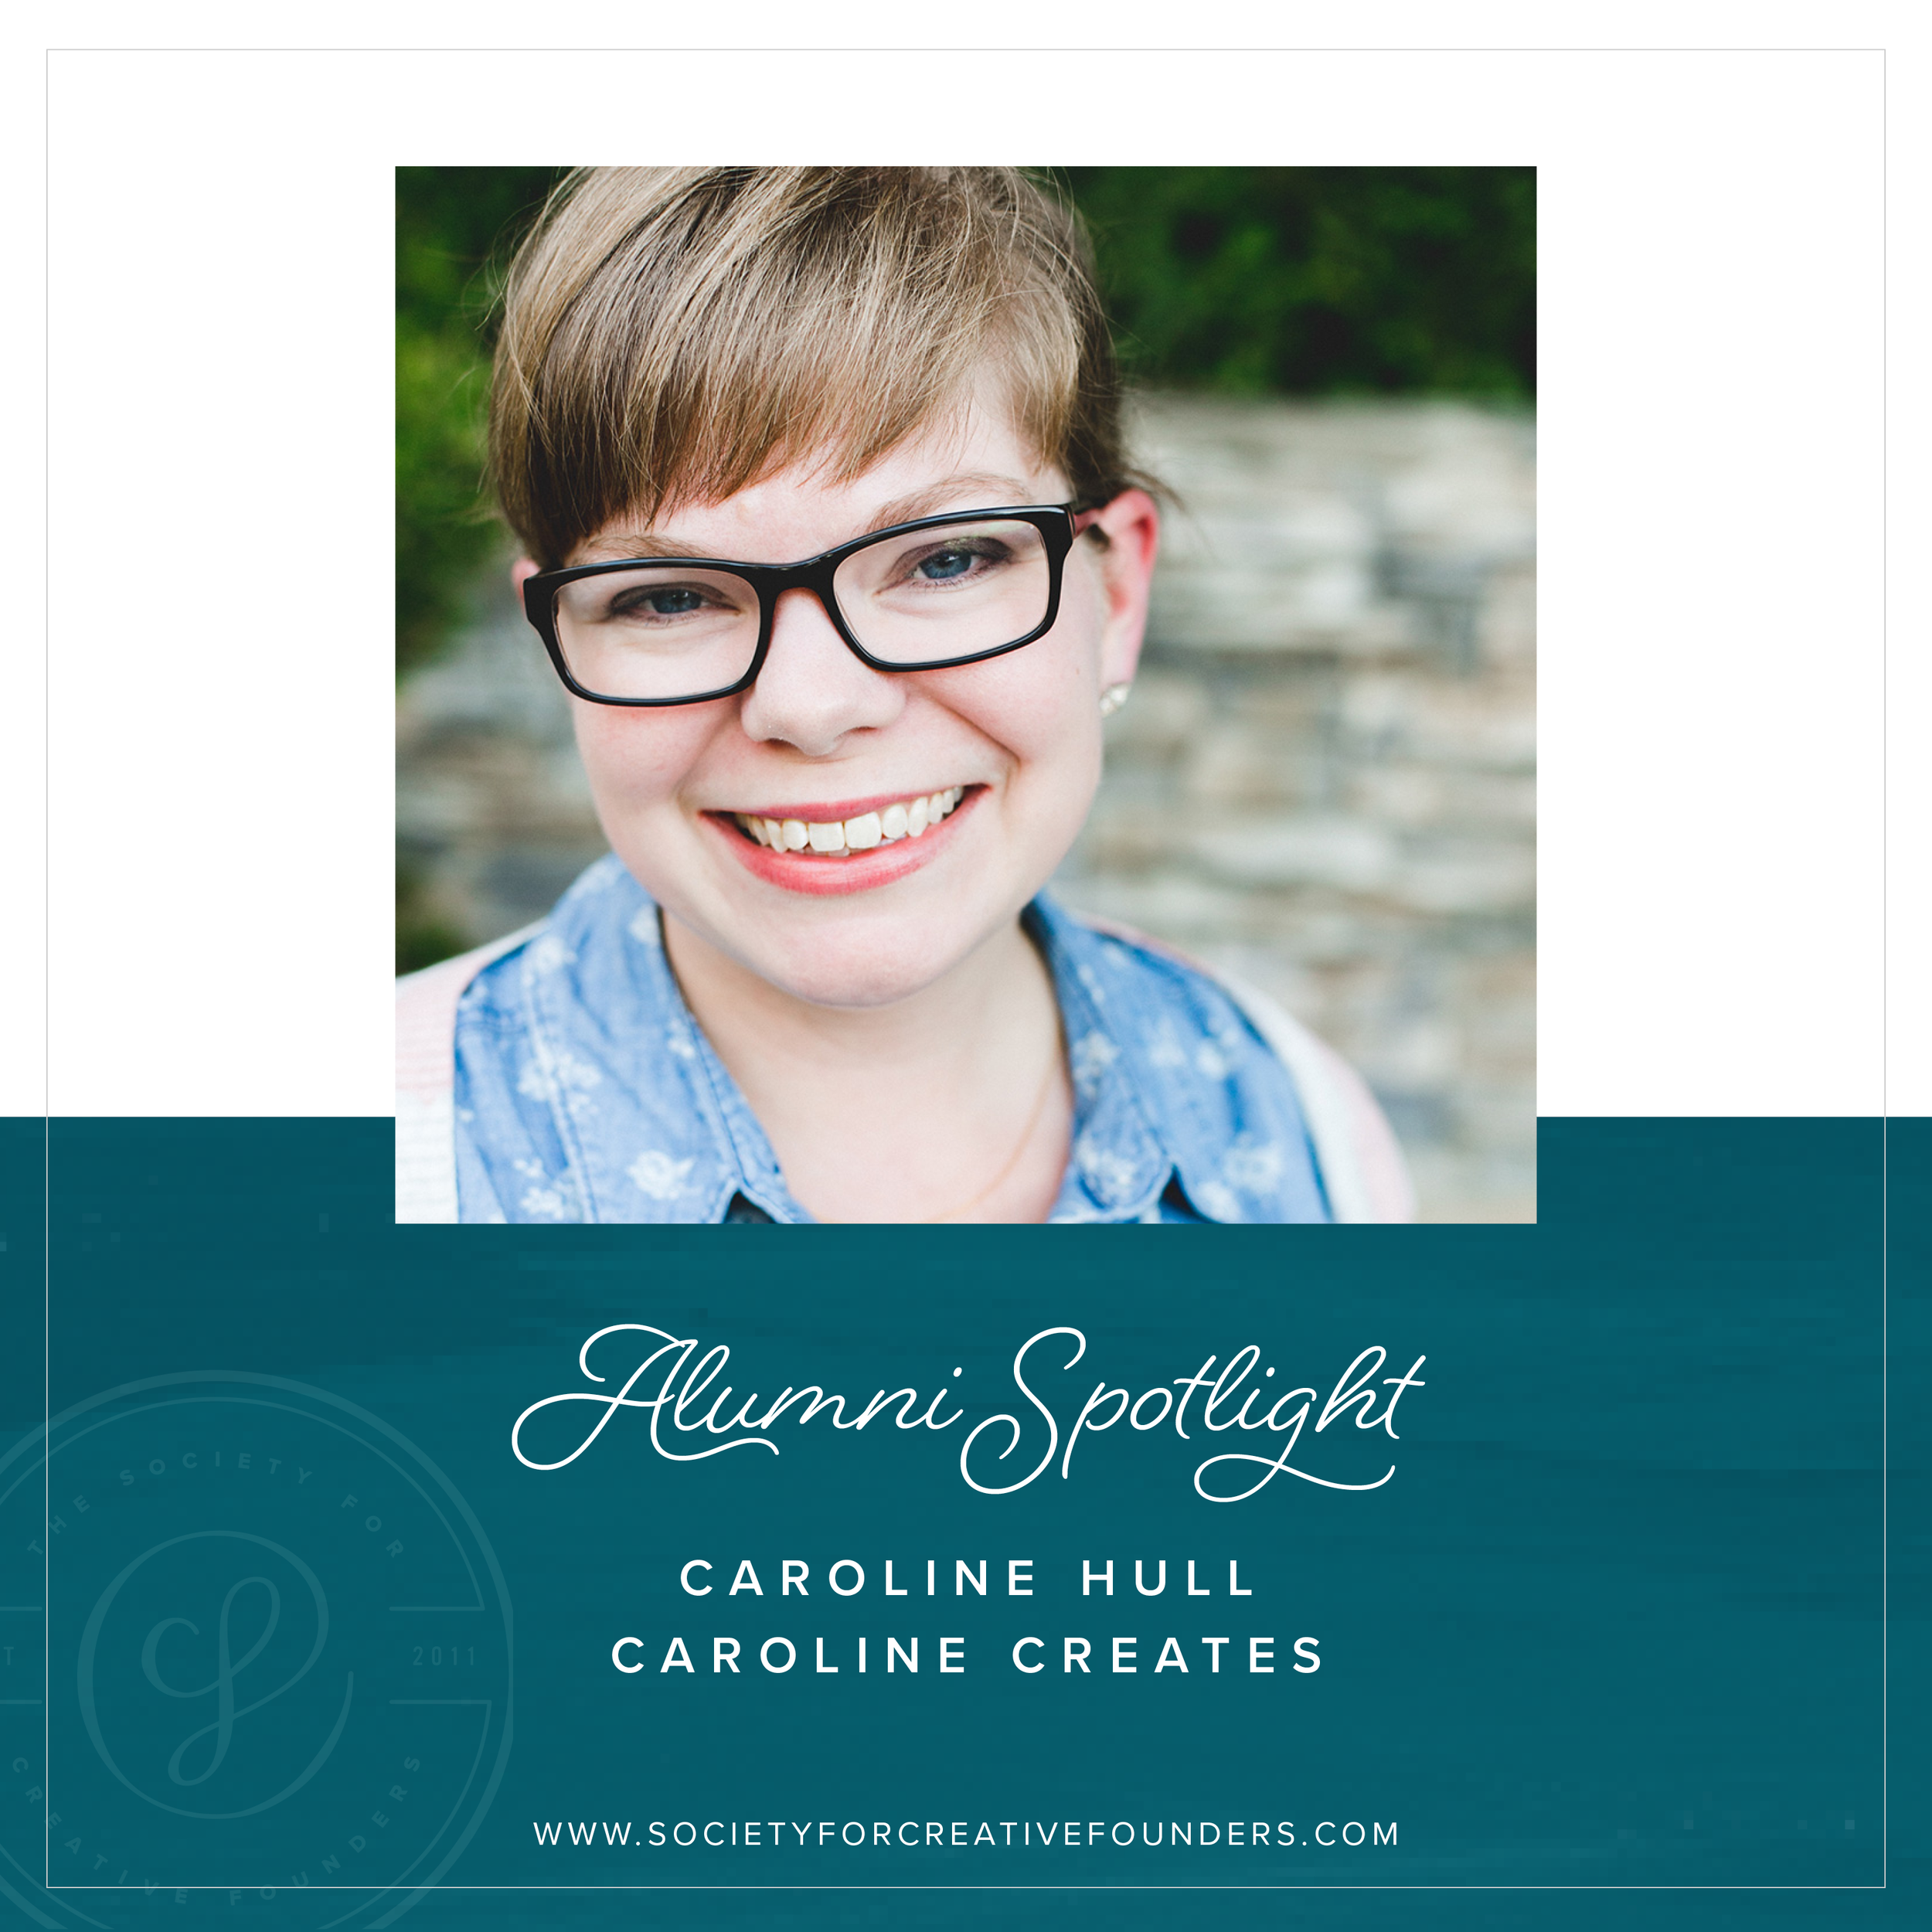 Caroline Hull from Caroline Creates